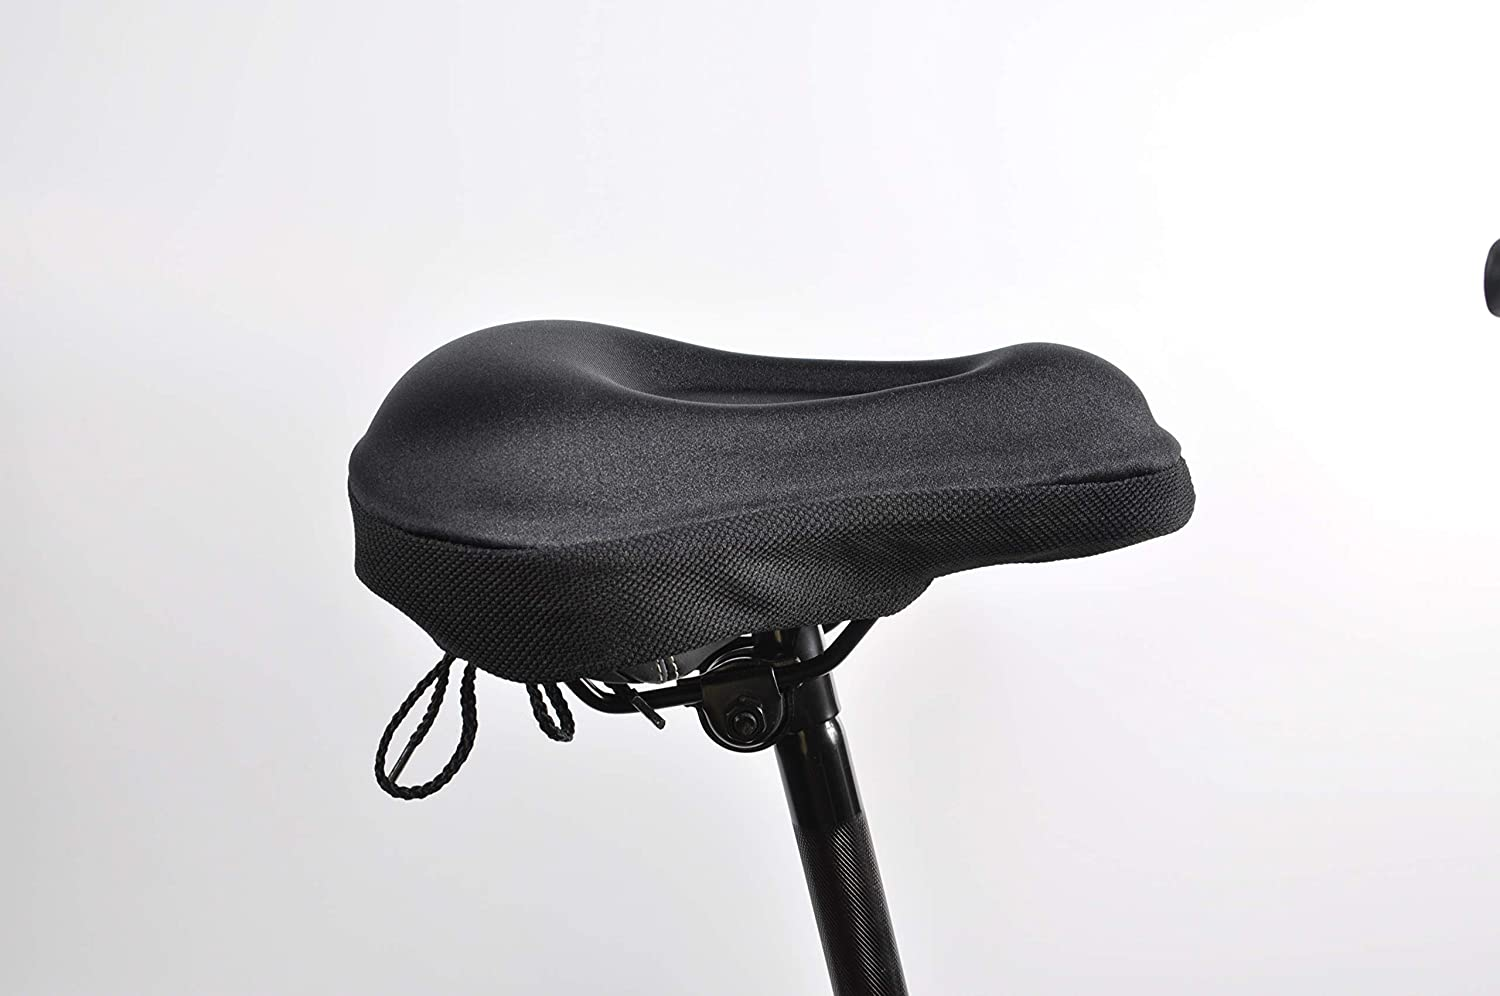 Soft Bicycle Saddle Cushion Comfortable Seat Pad for Spin Class and Indoor Cycling HOMEE Gel Bike Seat Cover